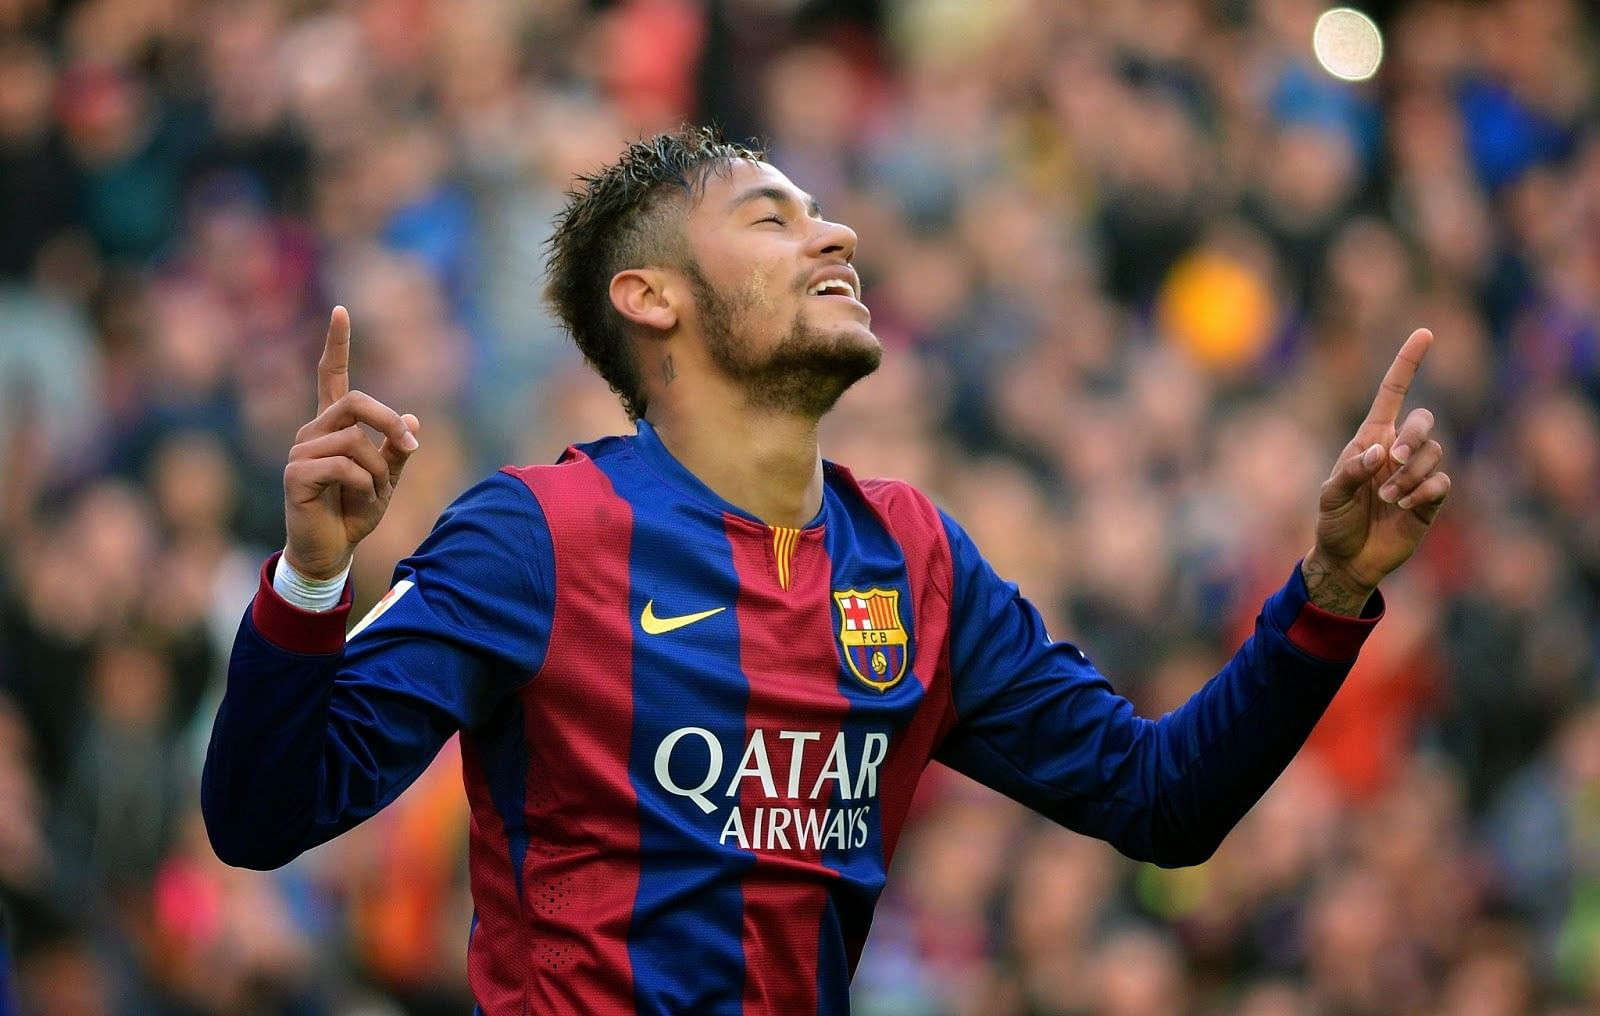 Neymar doing great at Barcelona, but yet to reach level of Messi and Ronaldo, says Seedorf